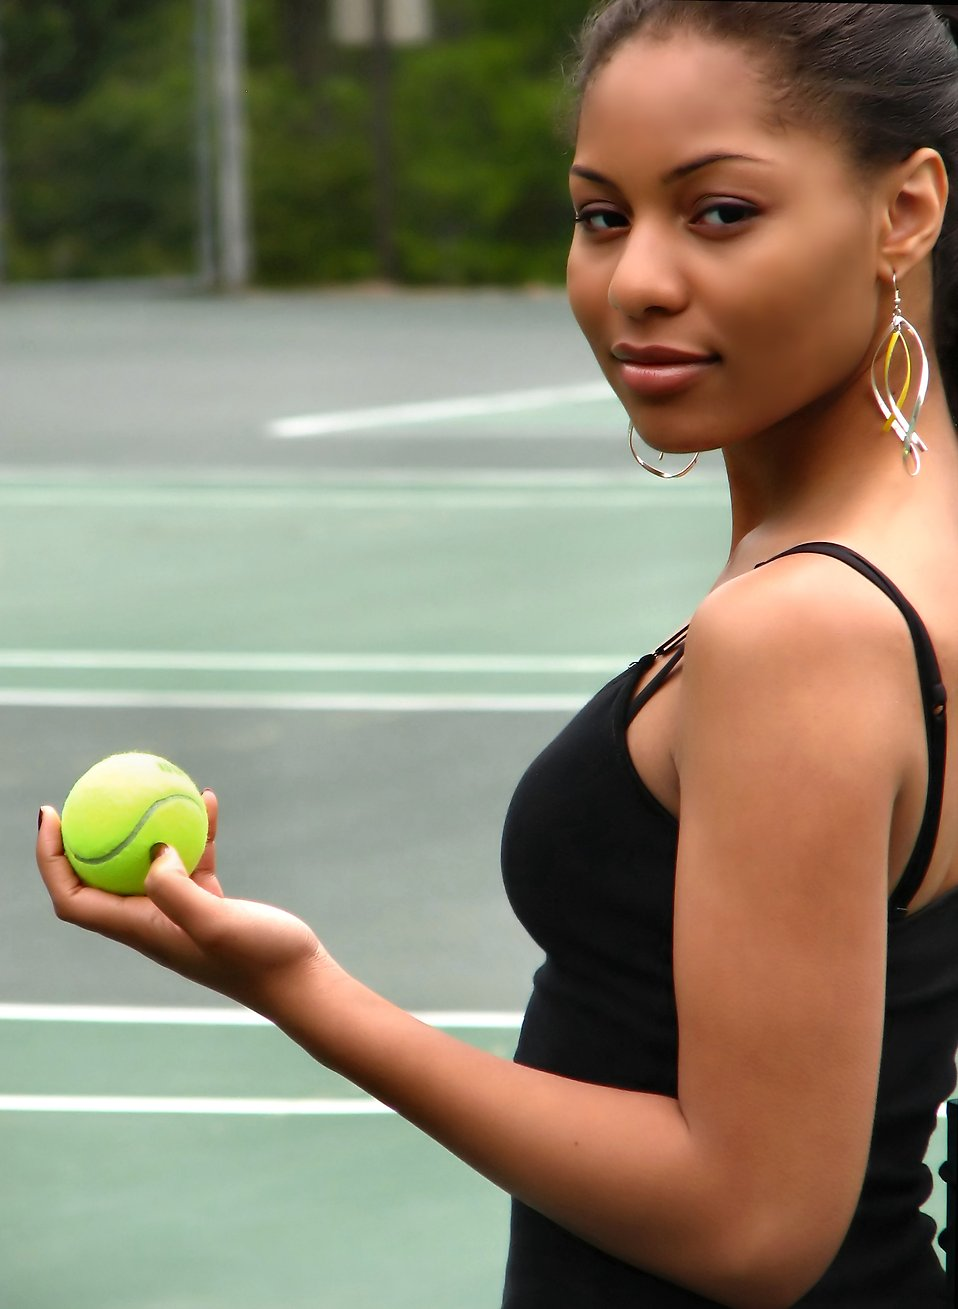 A beautiful African American teen girl holding a tennis ball : Free Stock Photo